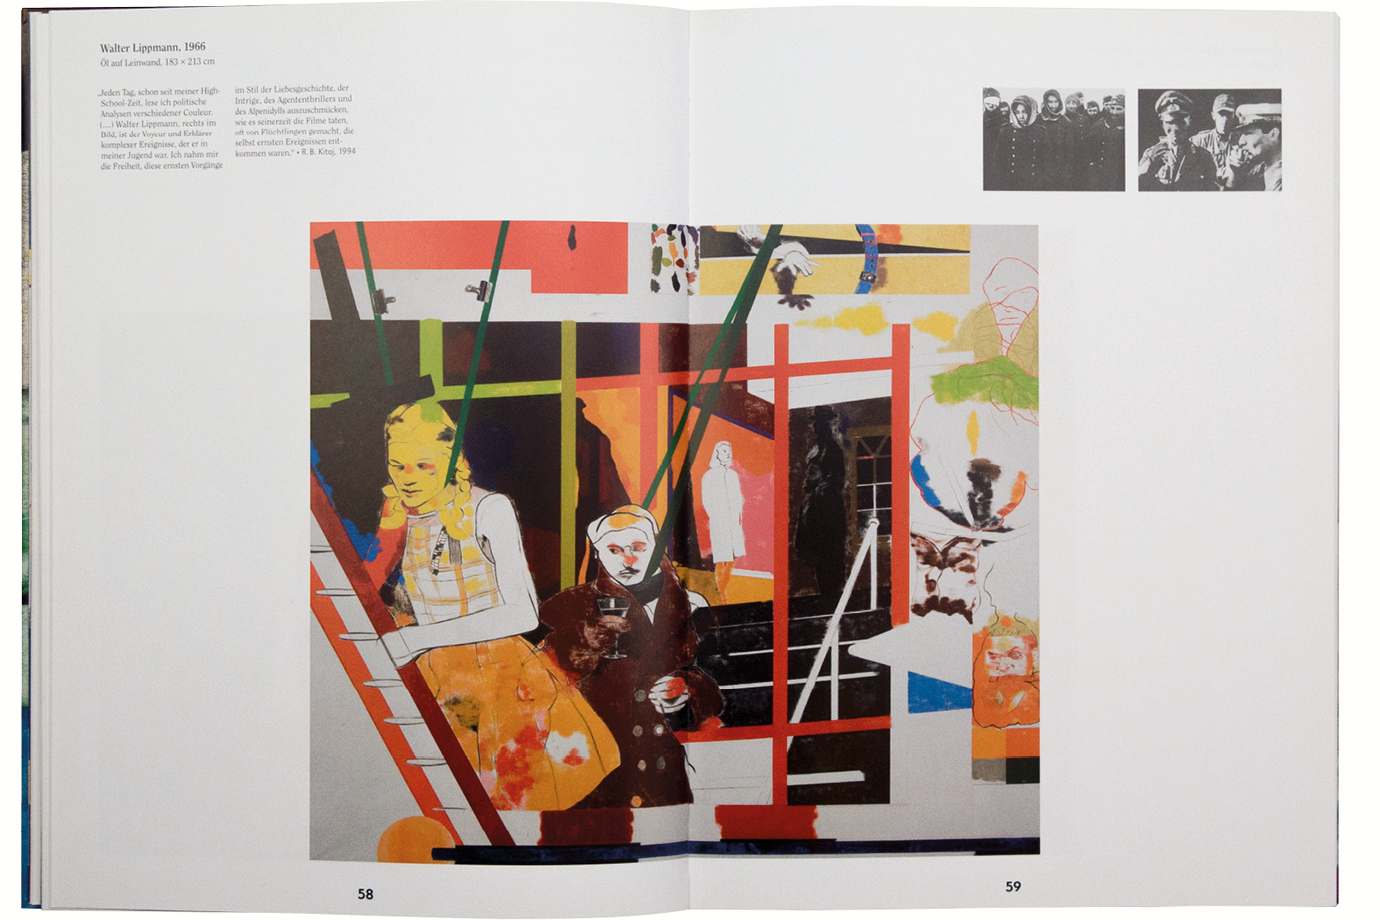 http://e-o-t.de/wordpress/wp-content/uploads/2017/07/eot-2012-Kitaj-Book-9.jpg